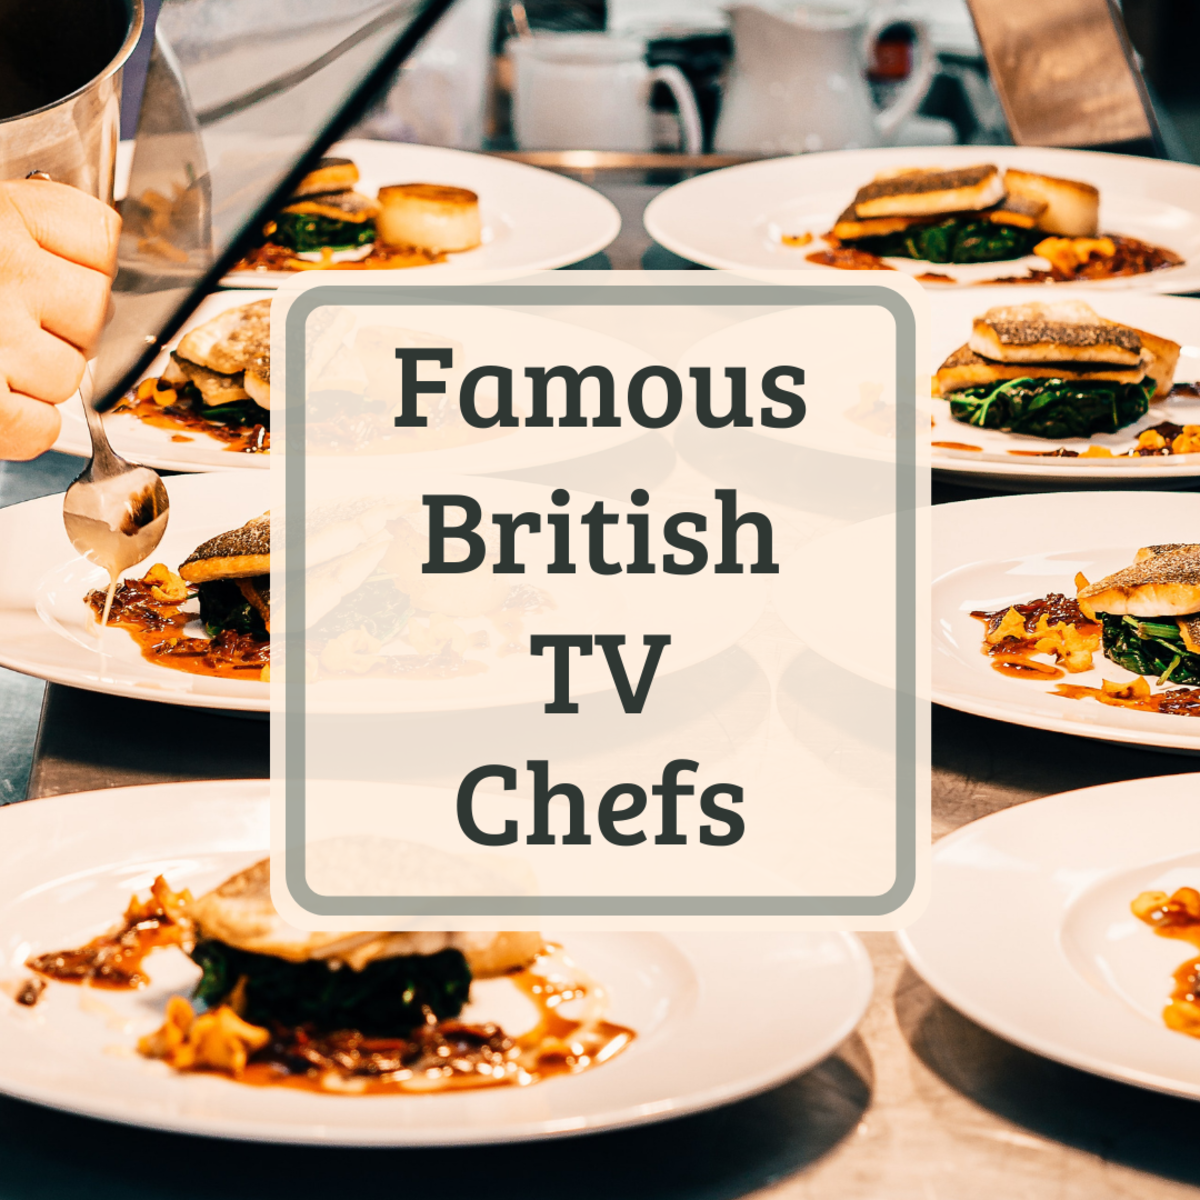 These celebrity chefs from the UK can teach you a lot about cooking!